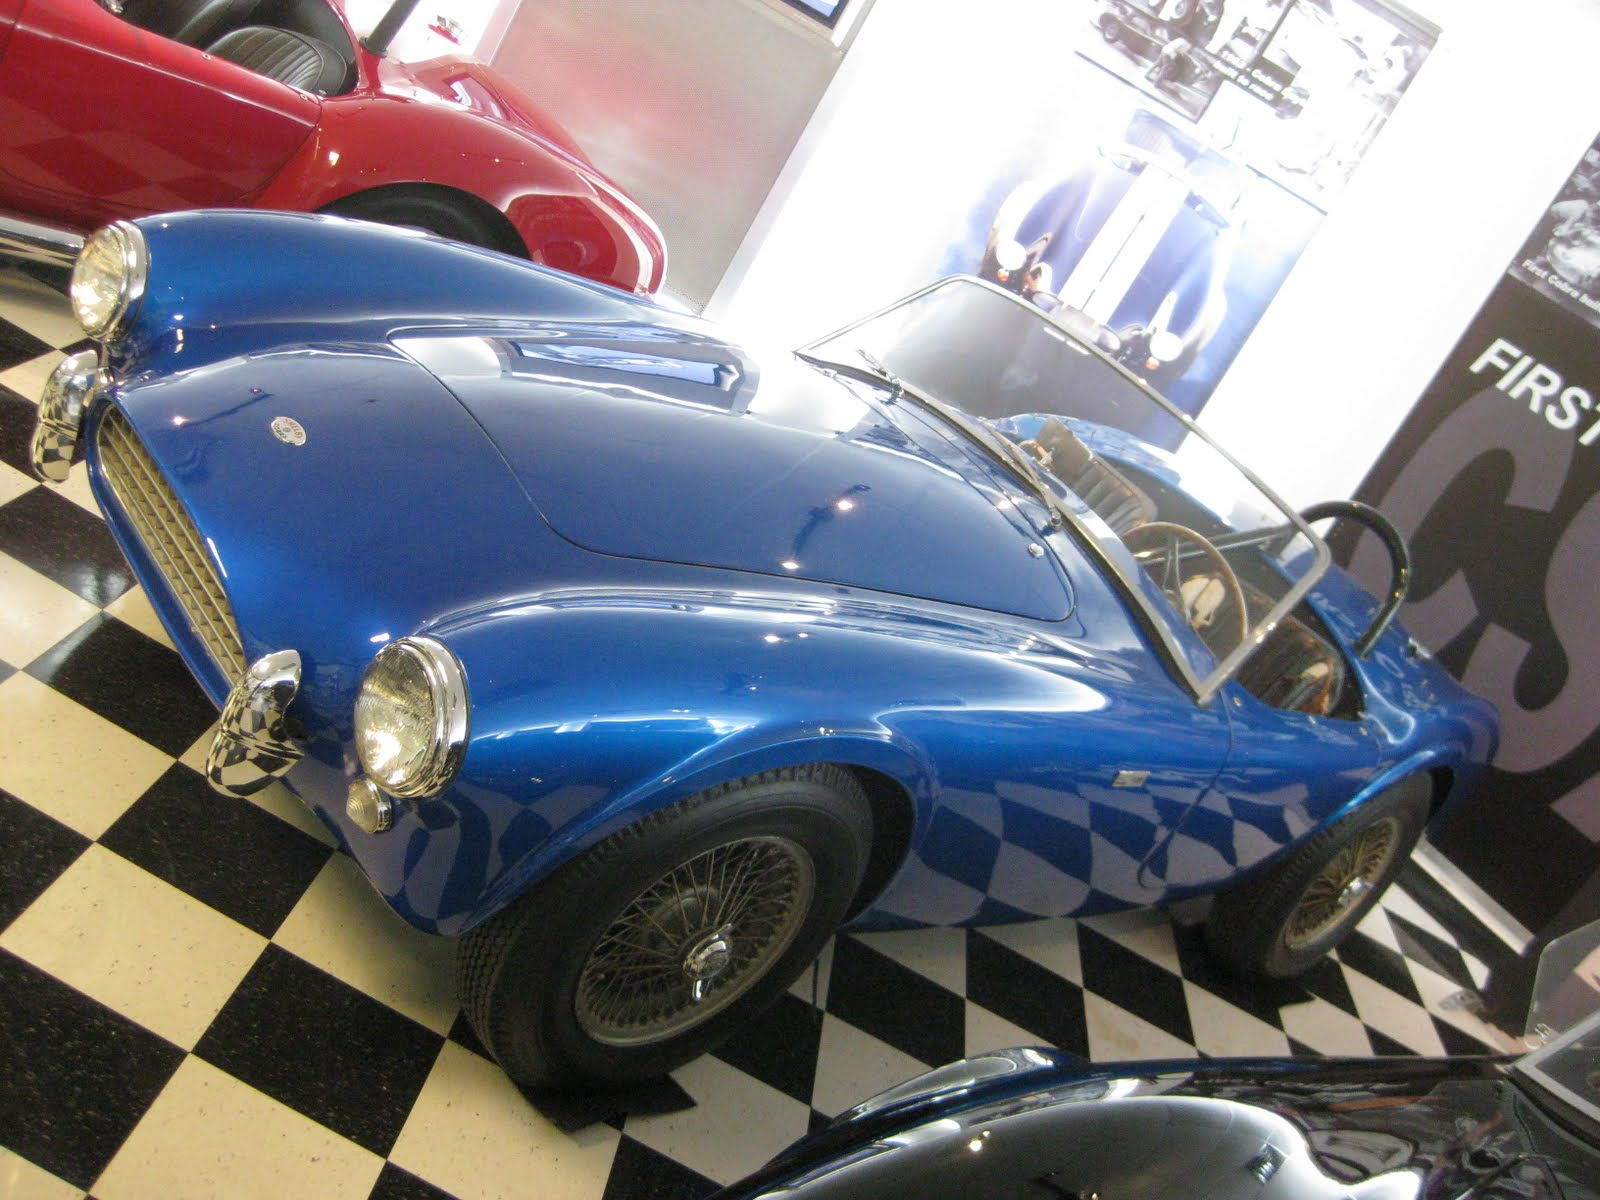 Las Vegas for the Car Enthusiast: 1 Factory, 2 Museums, 3 Laps ...